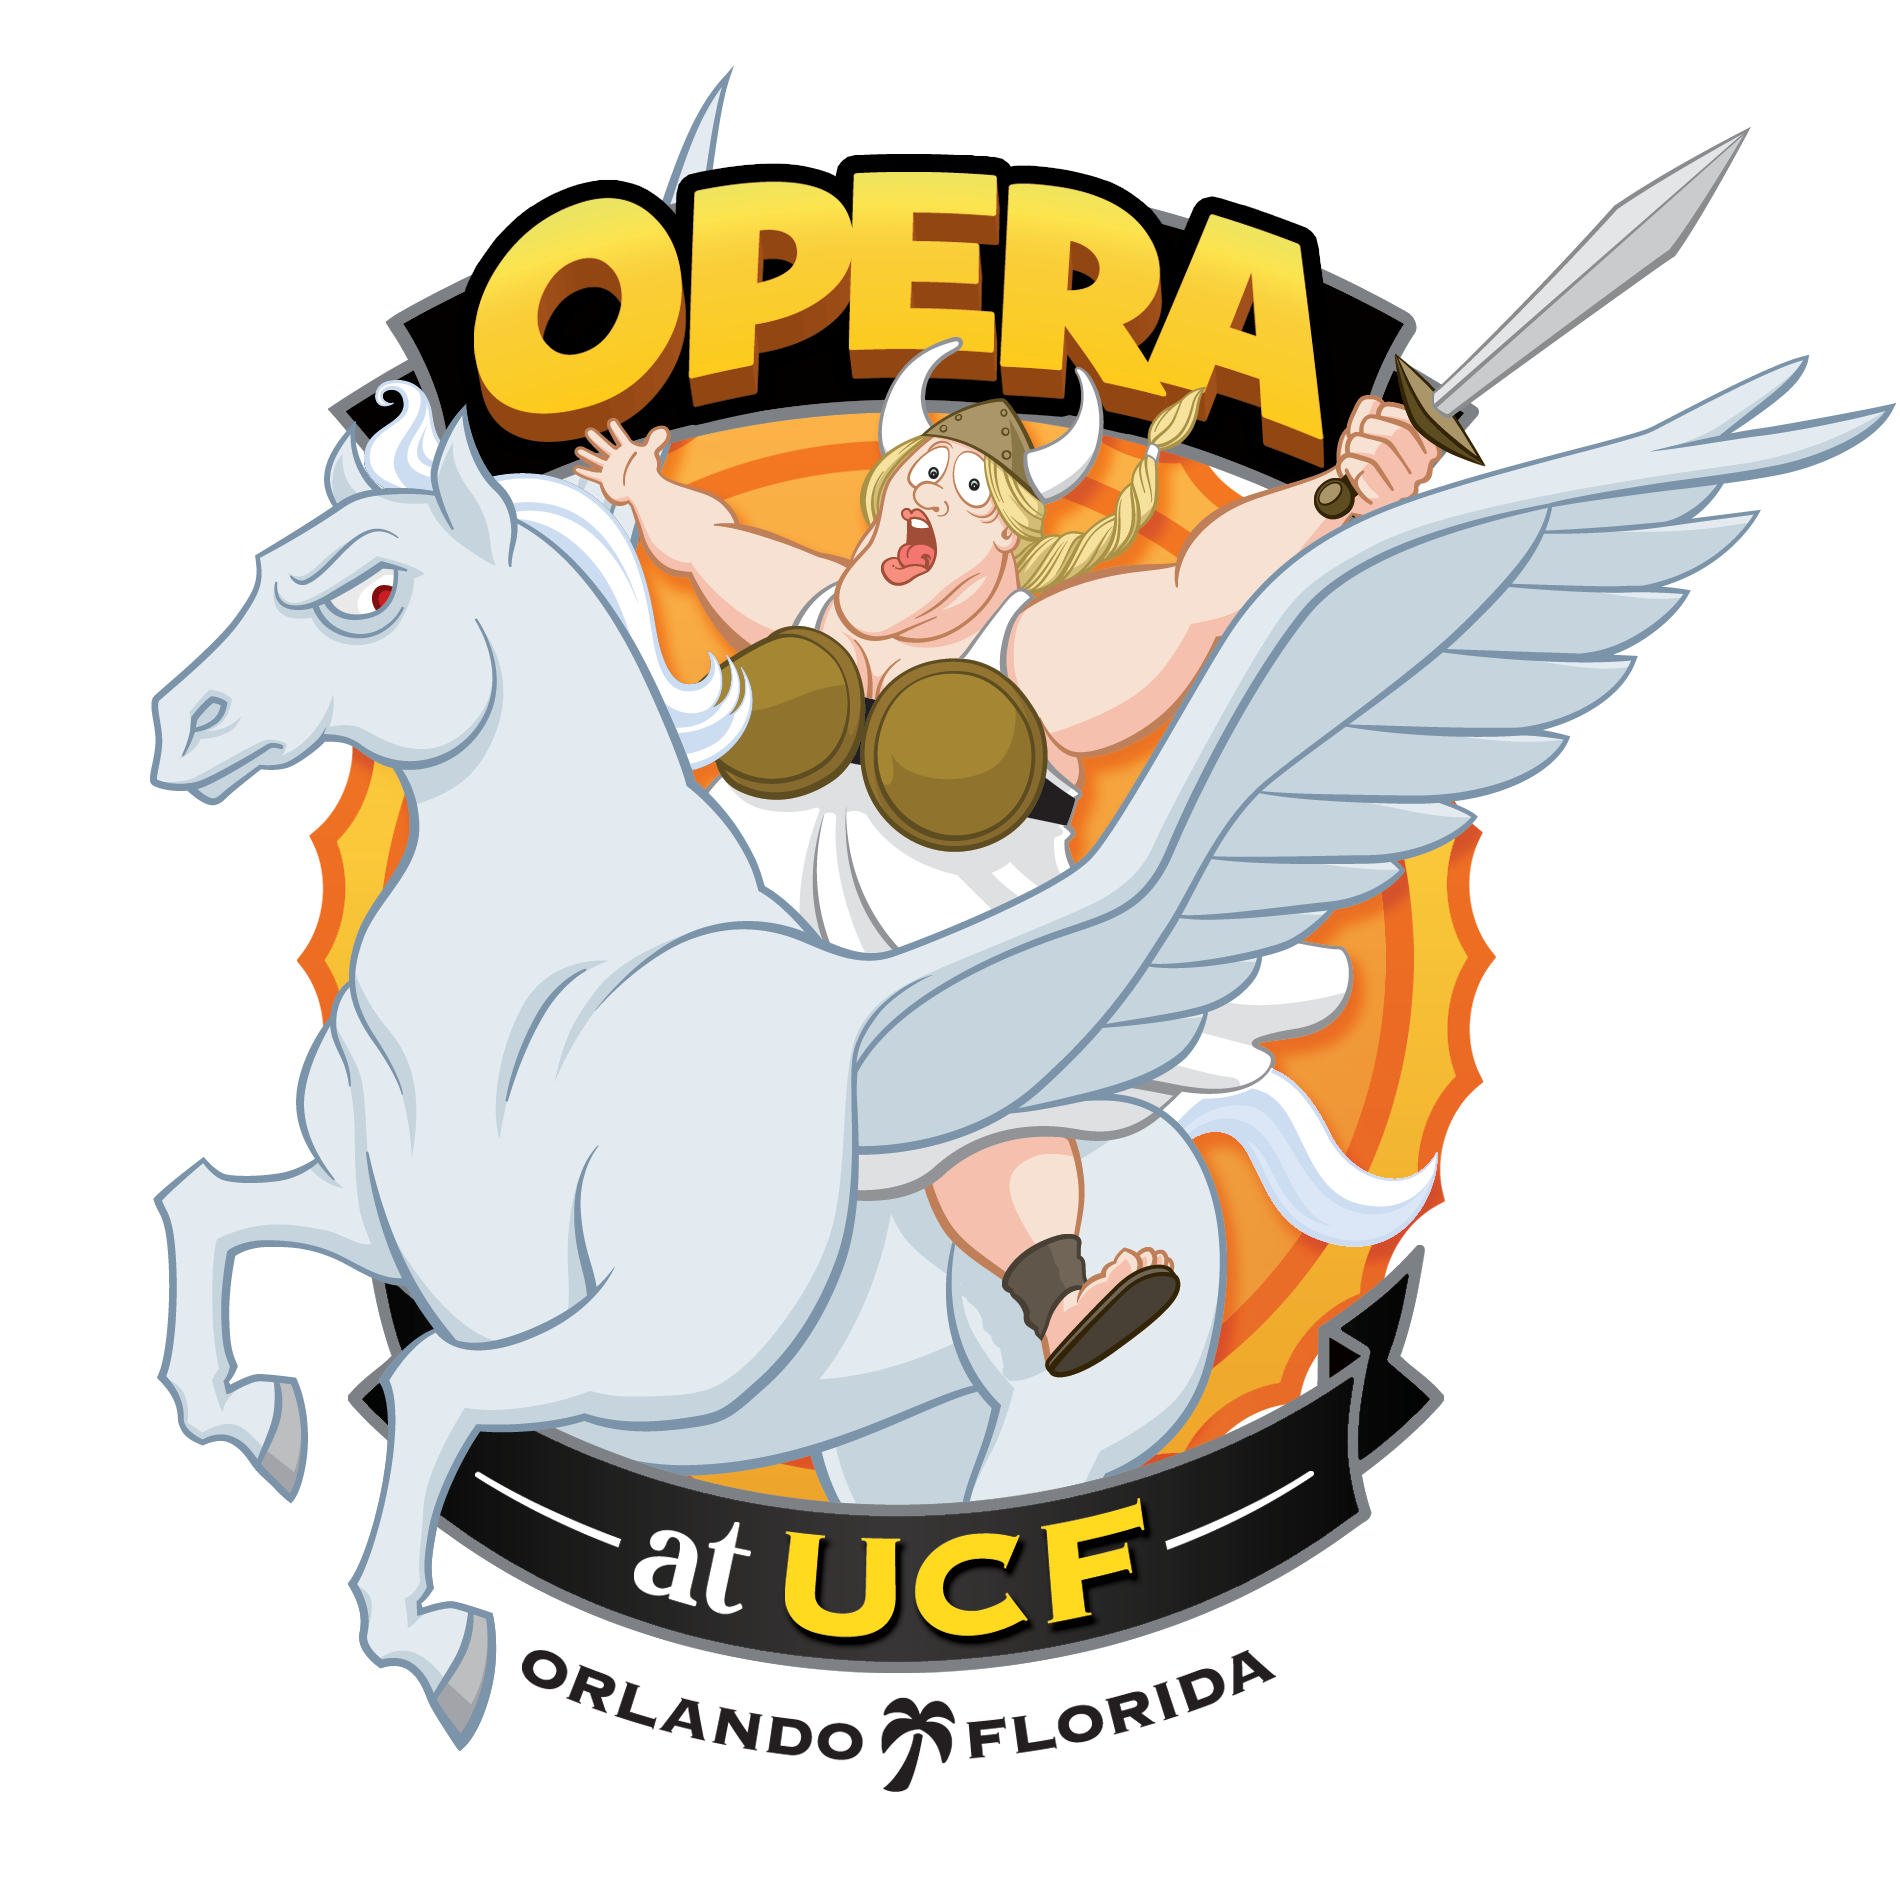 2014-UCF Opera-Fat Lady-Pegasus